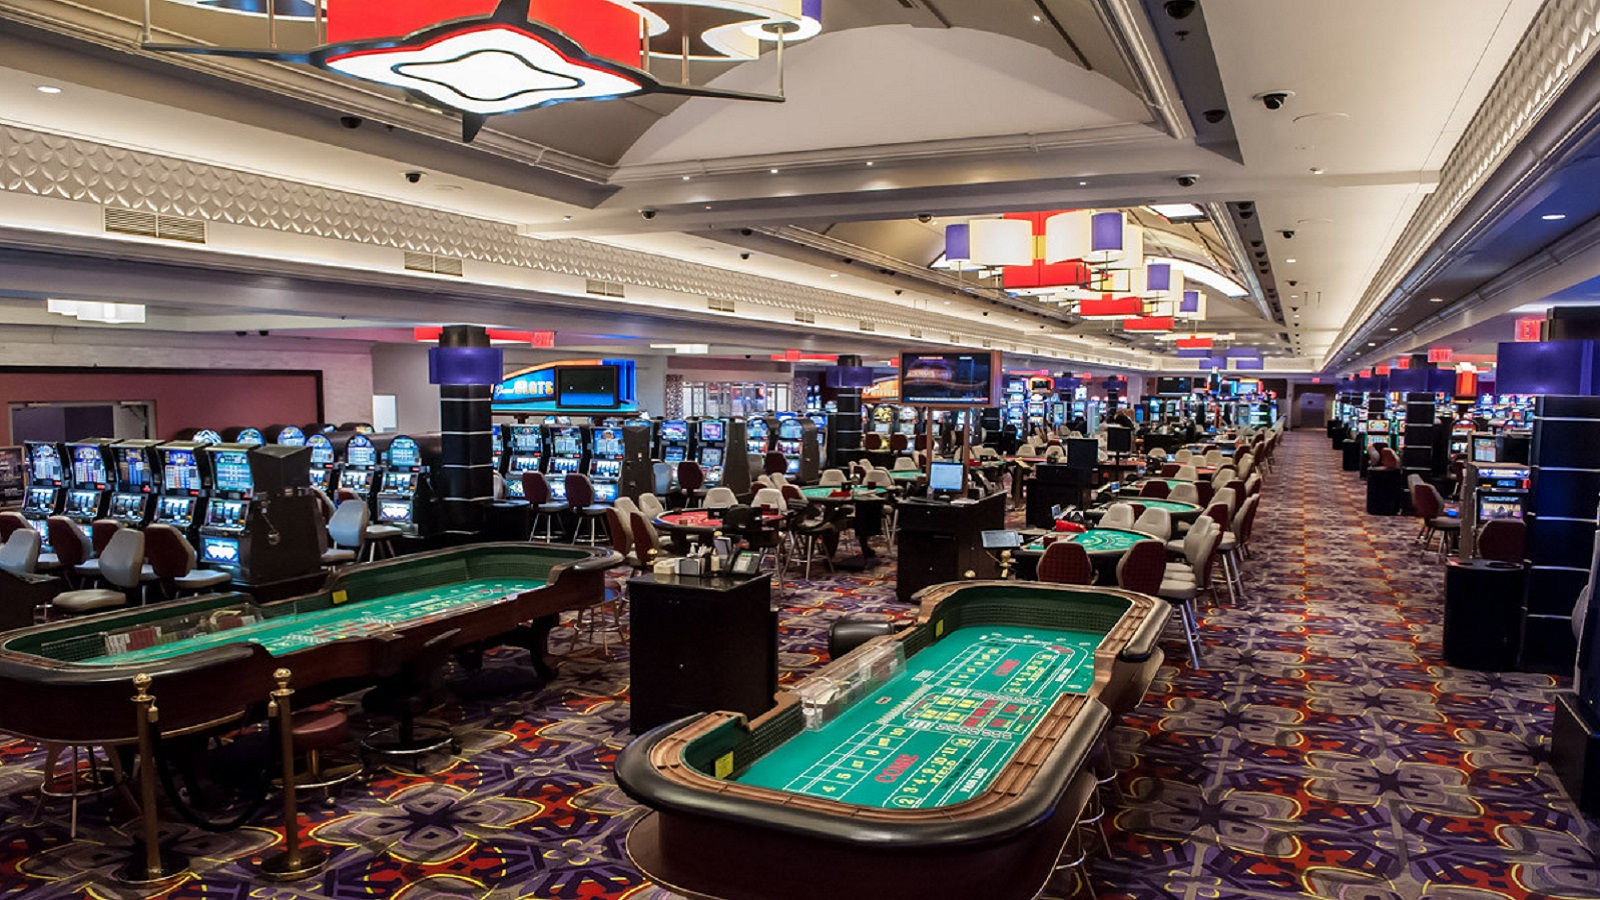 Things to do in Lisle IL - Casino